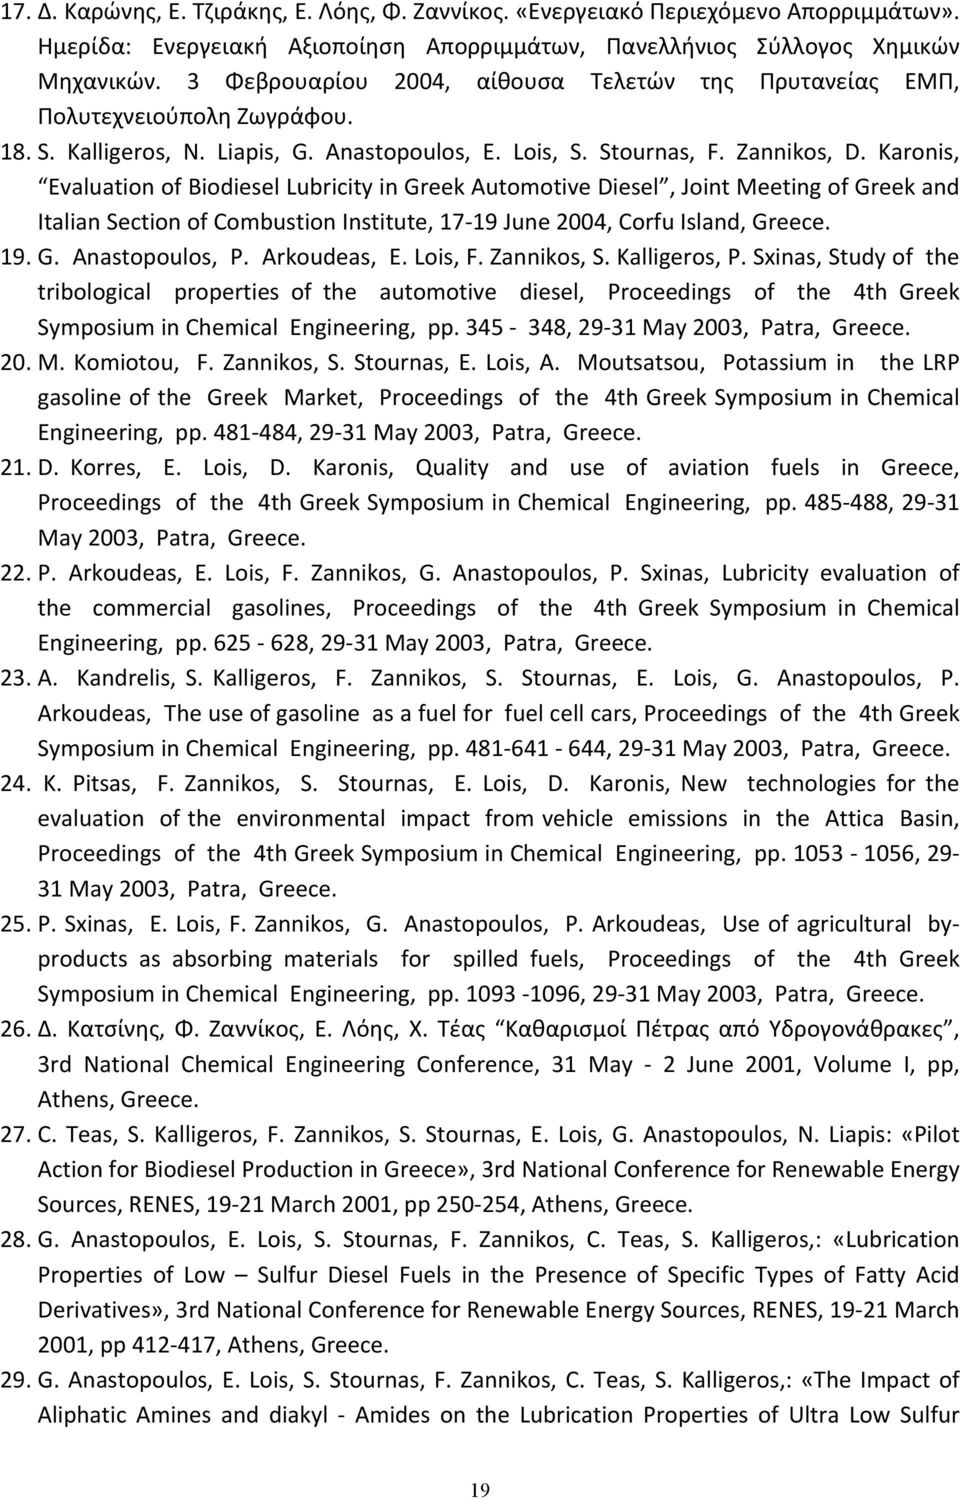 Karonis, Evaluation of Biodiesel Lubricity in Greek Automotive Diesel, Joint Meeting of Greek and Italian Section of Combustion Institute, 17-19 June 2004, Corfu Island, Greece. 19. G. Anastopoulos, P.